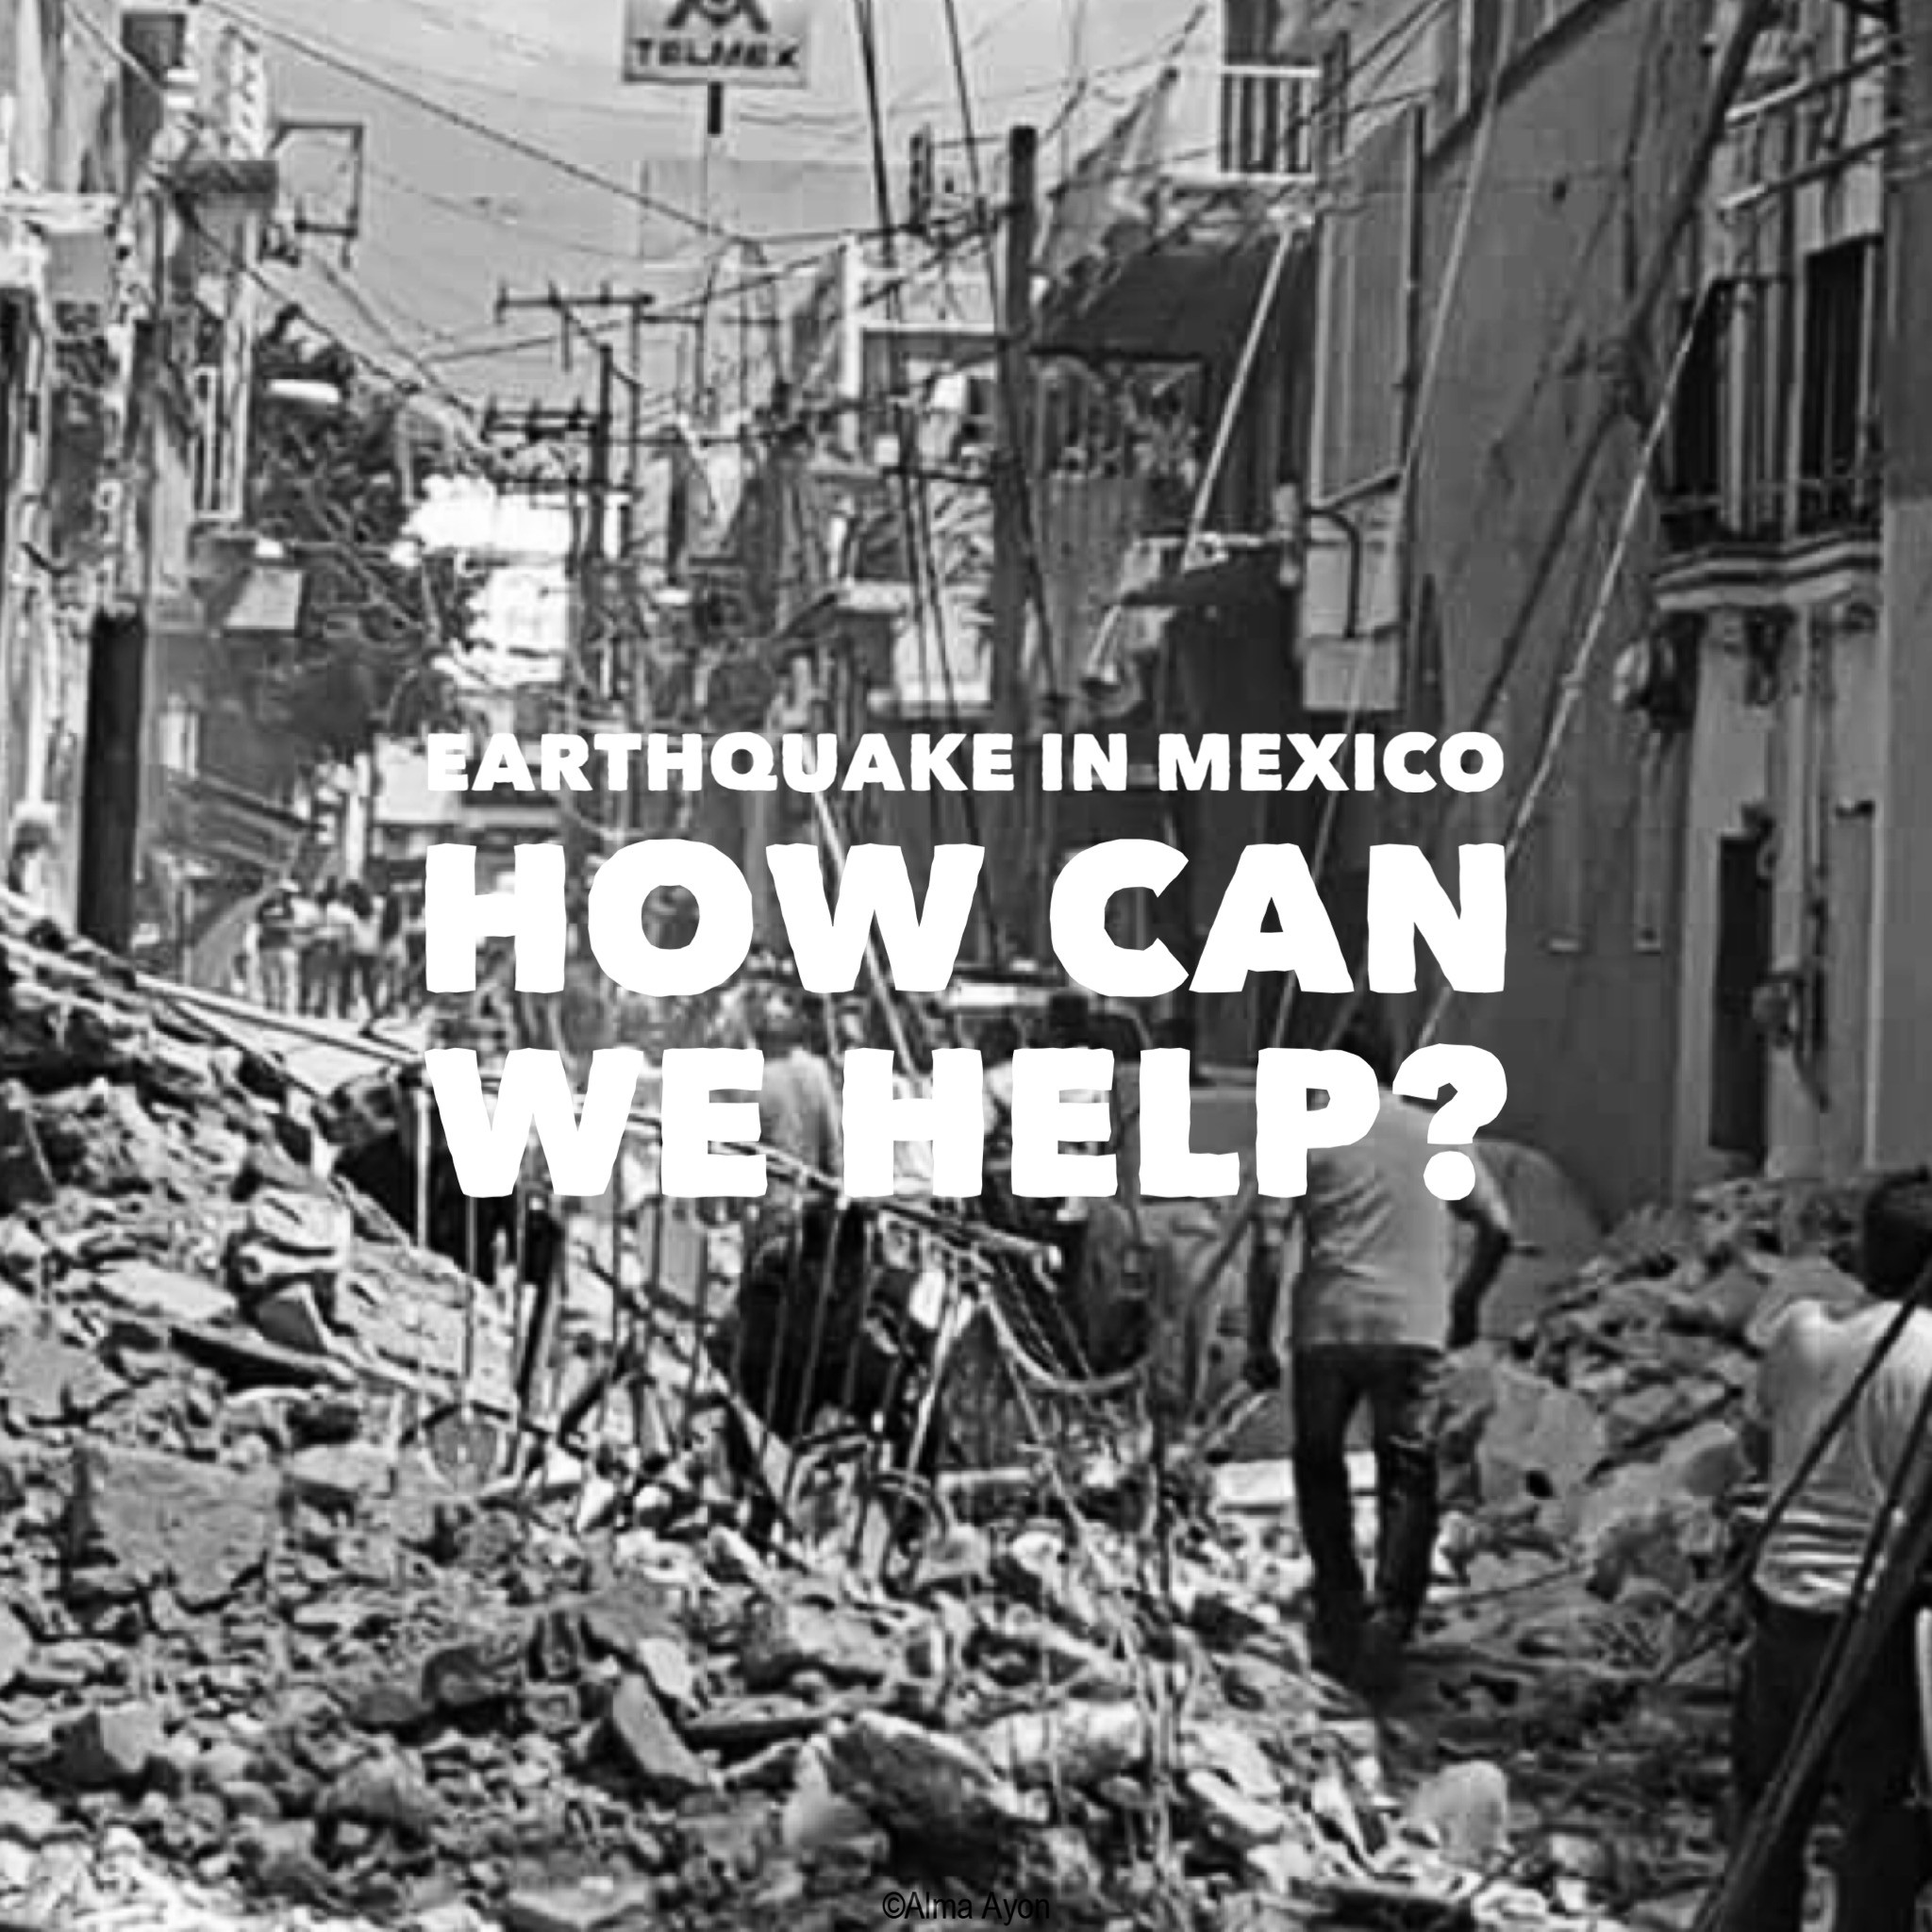 Earthquake in Mexico: how can wehelp?